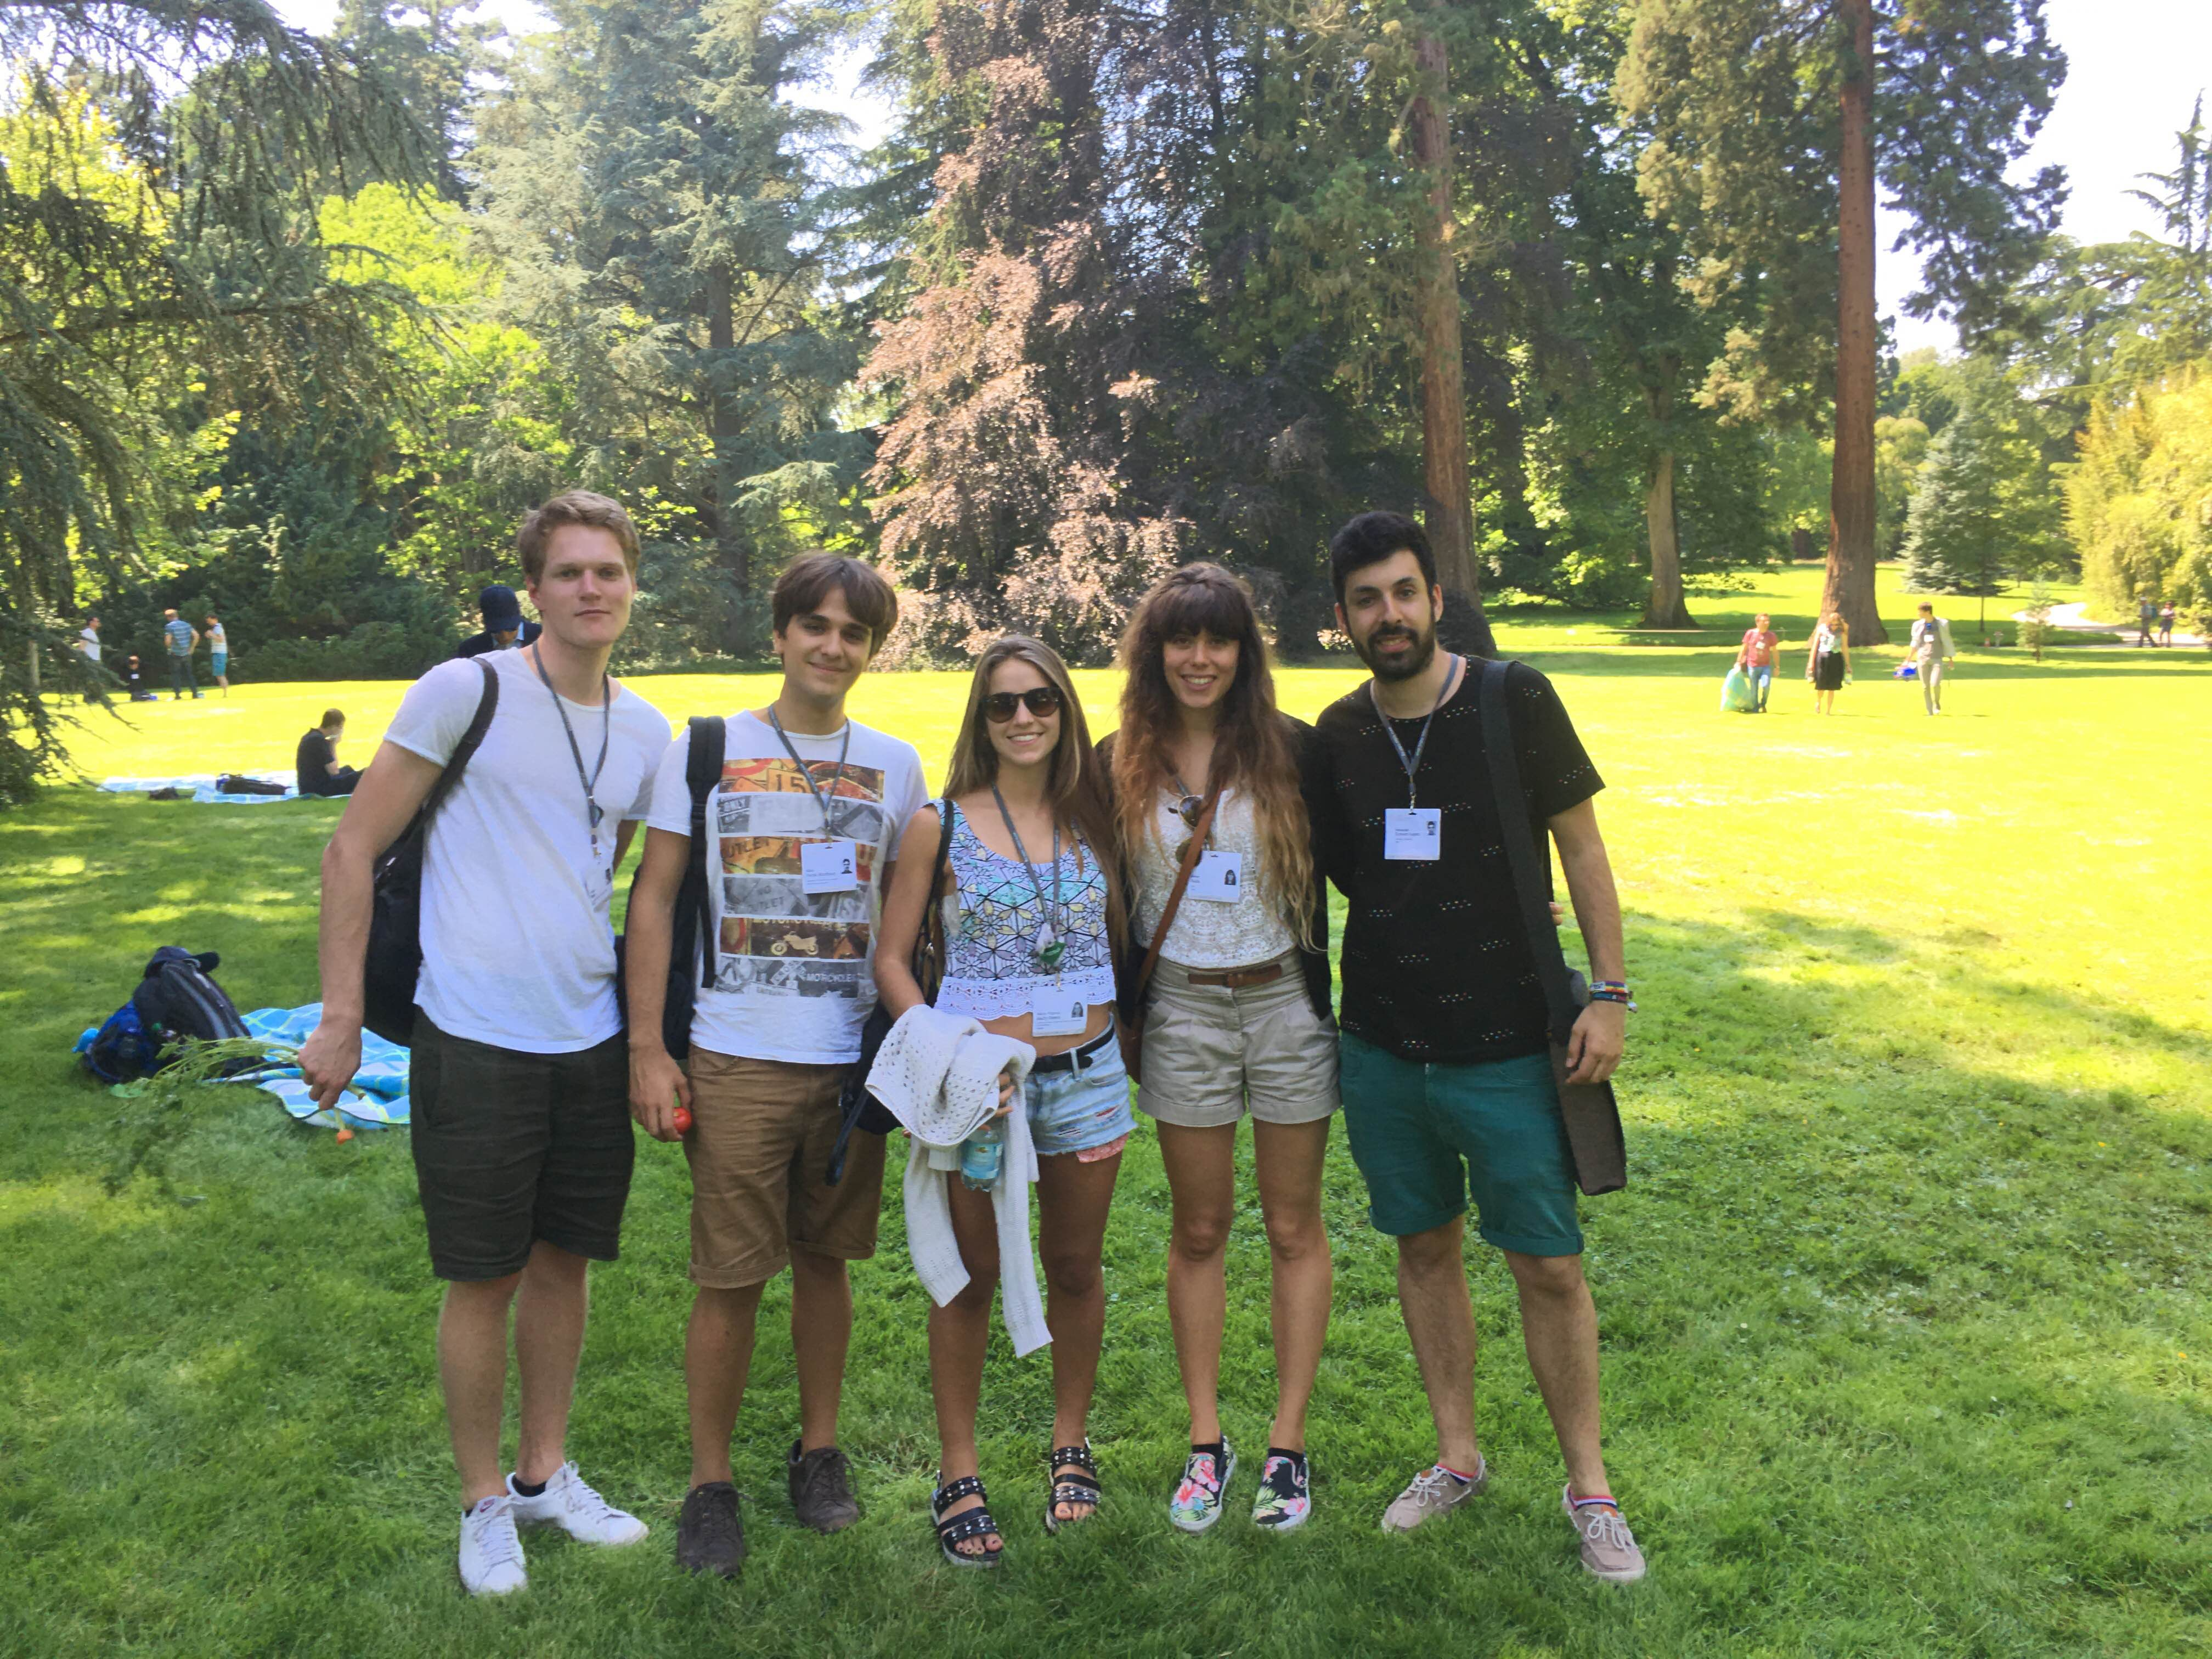 Irene Alda (second from right) with new #LiNo16 friends